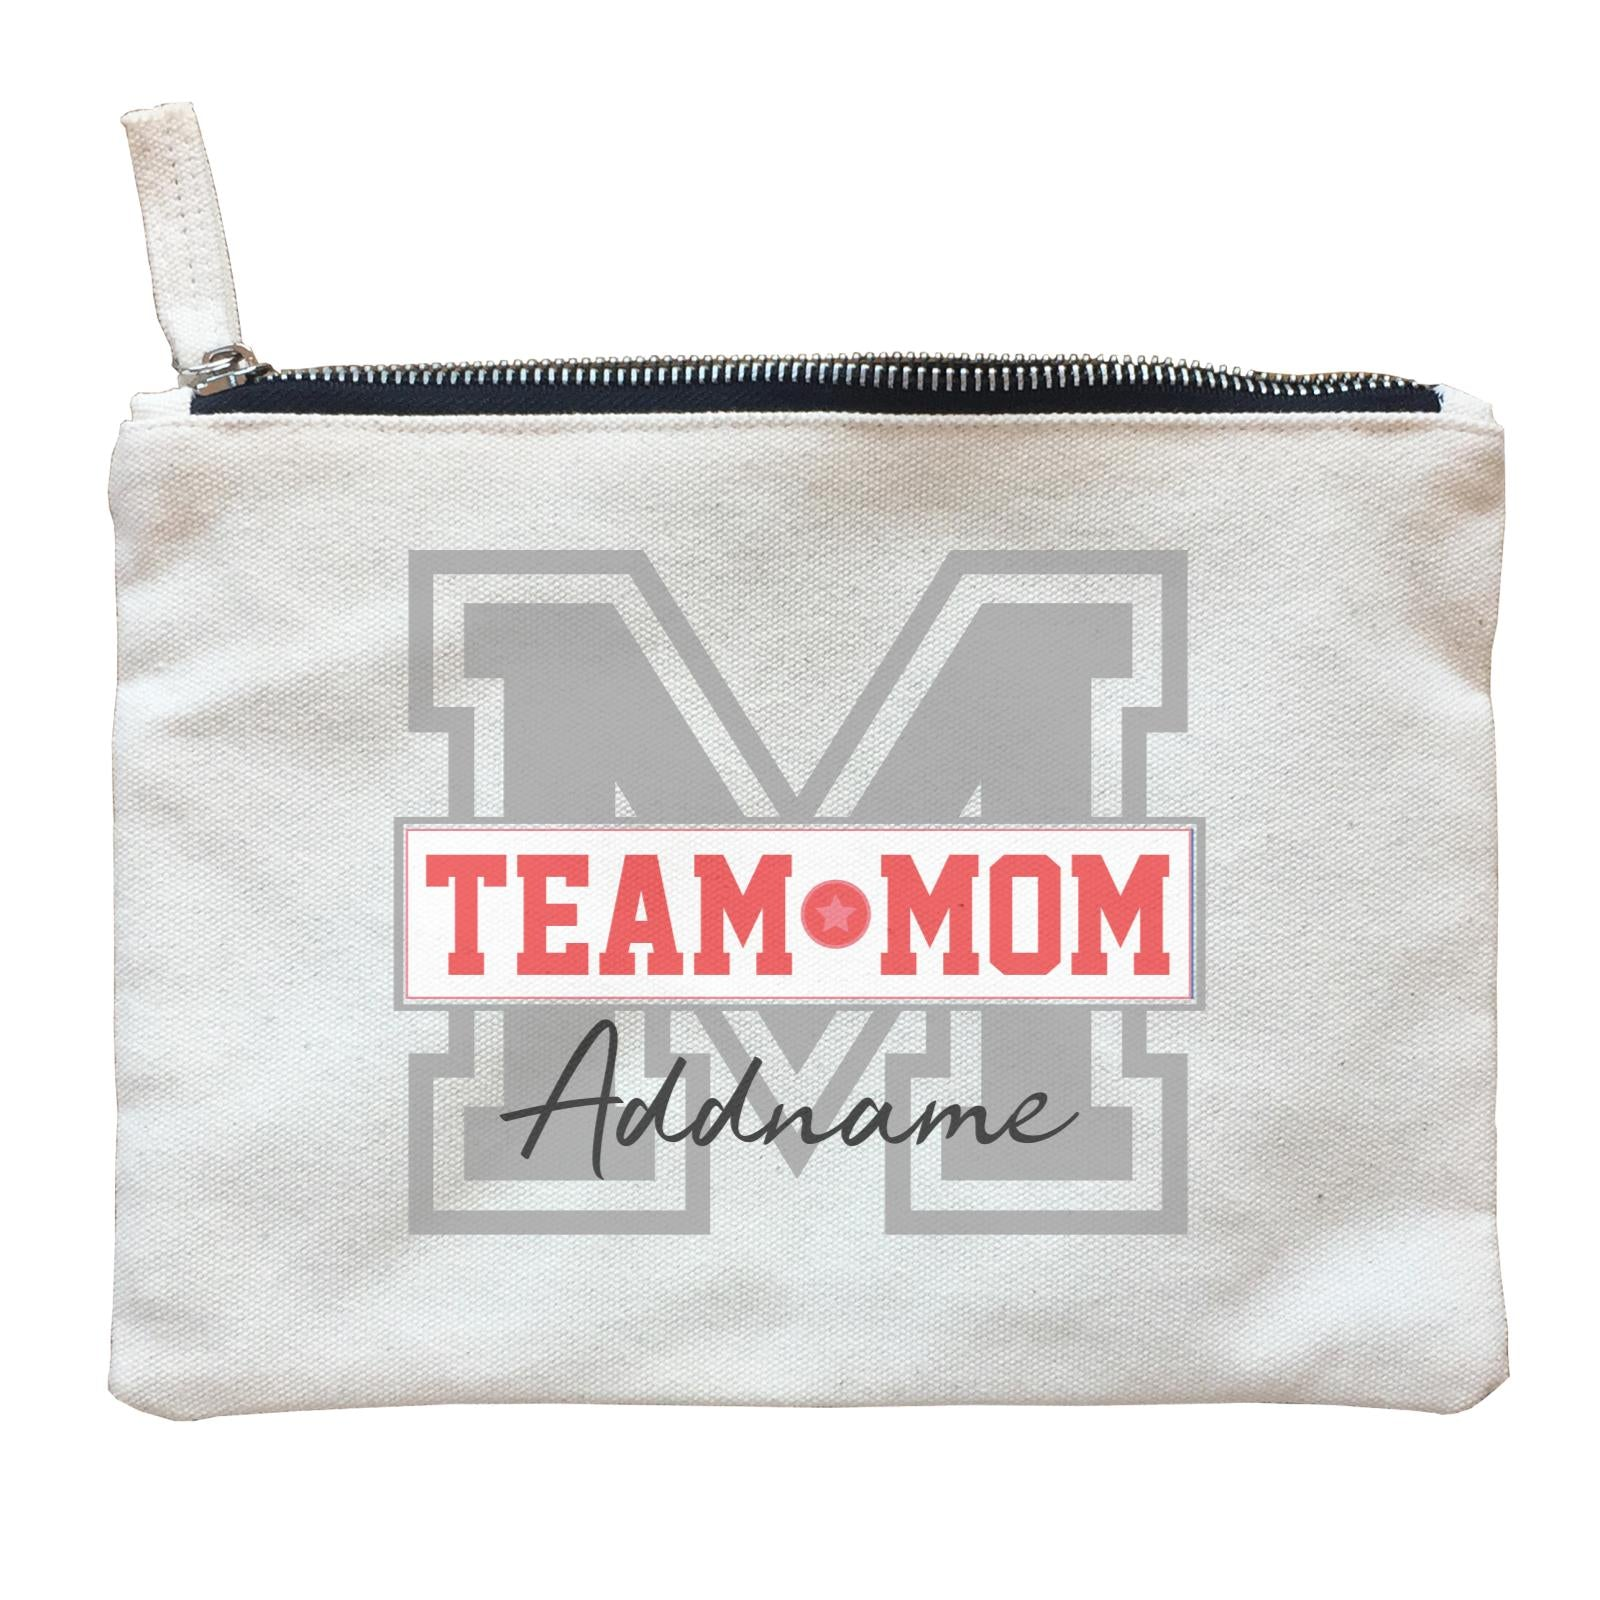 Team Mom Addname Zipper Pouch